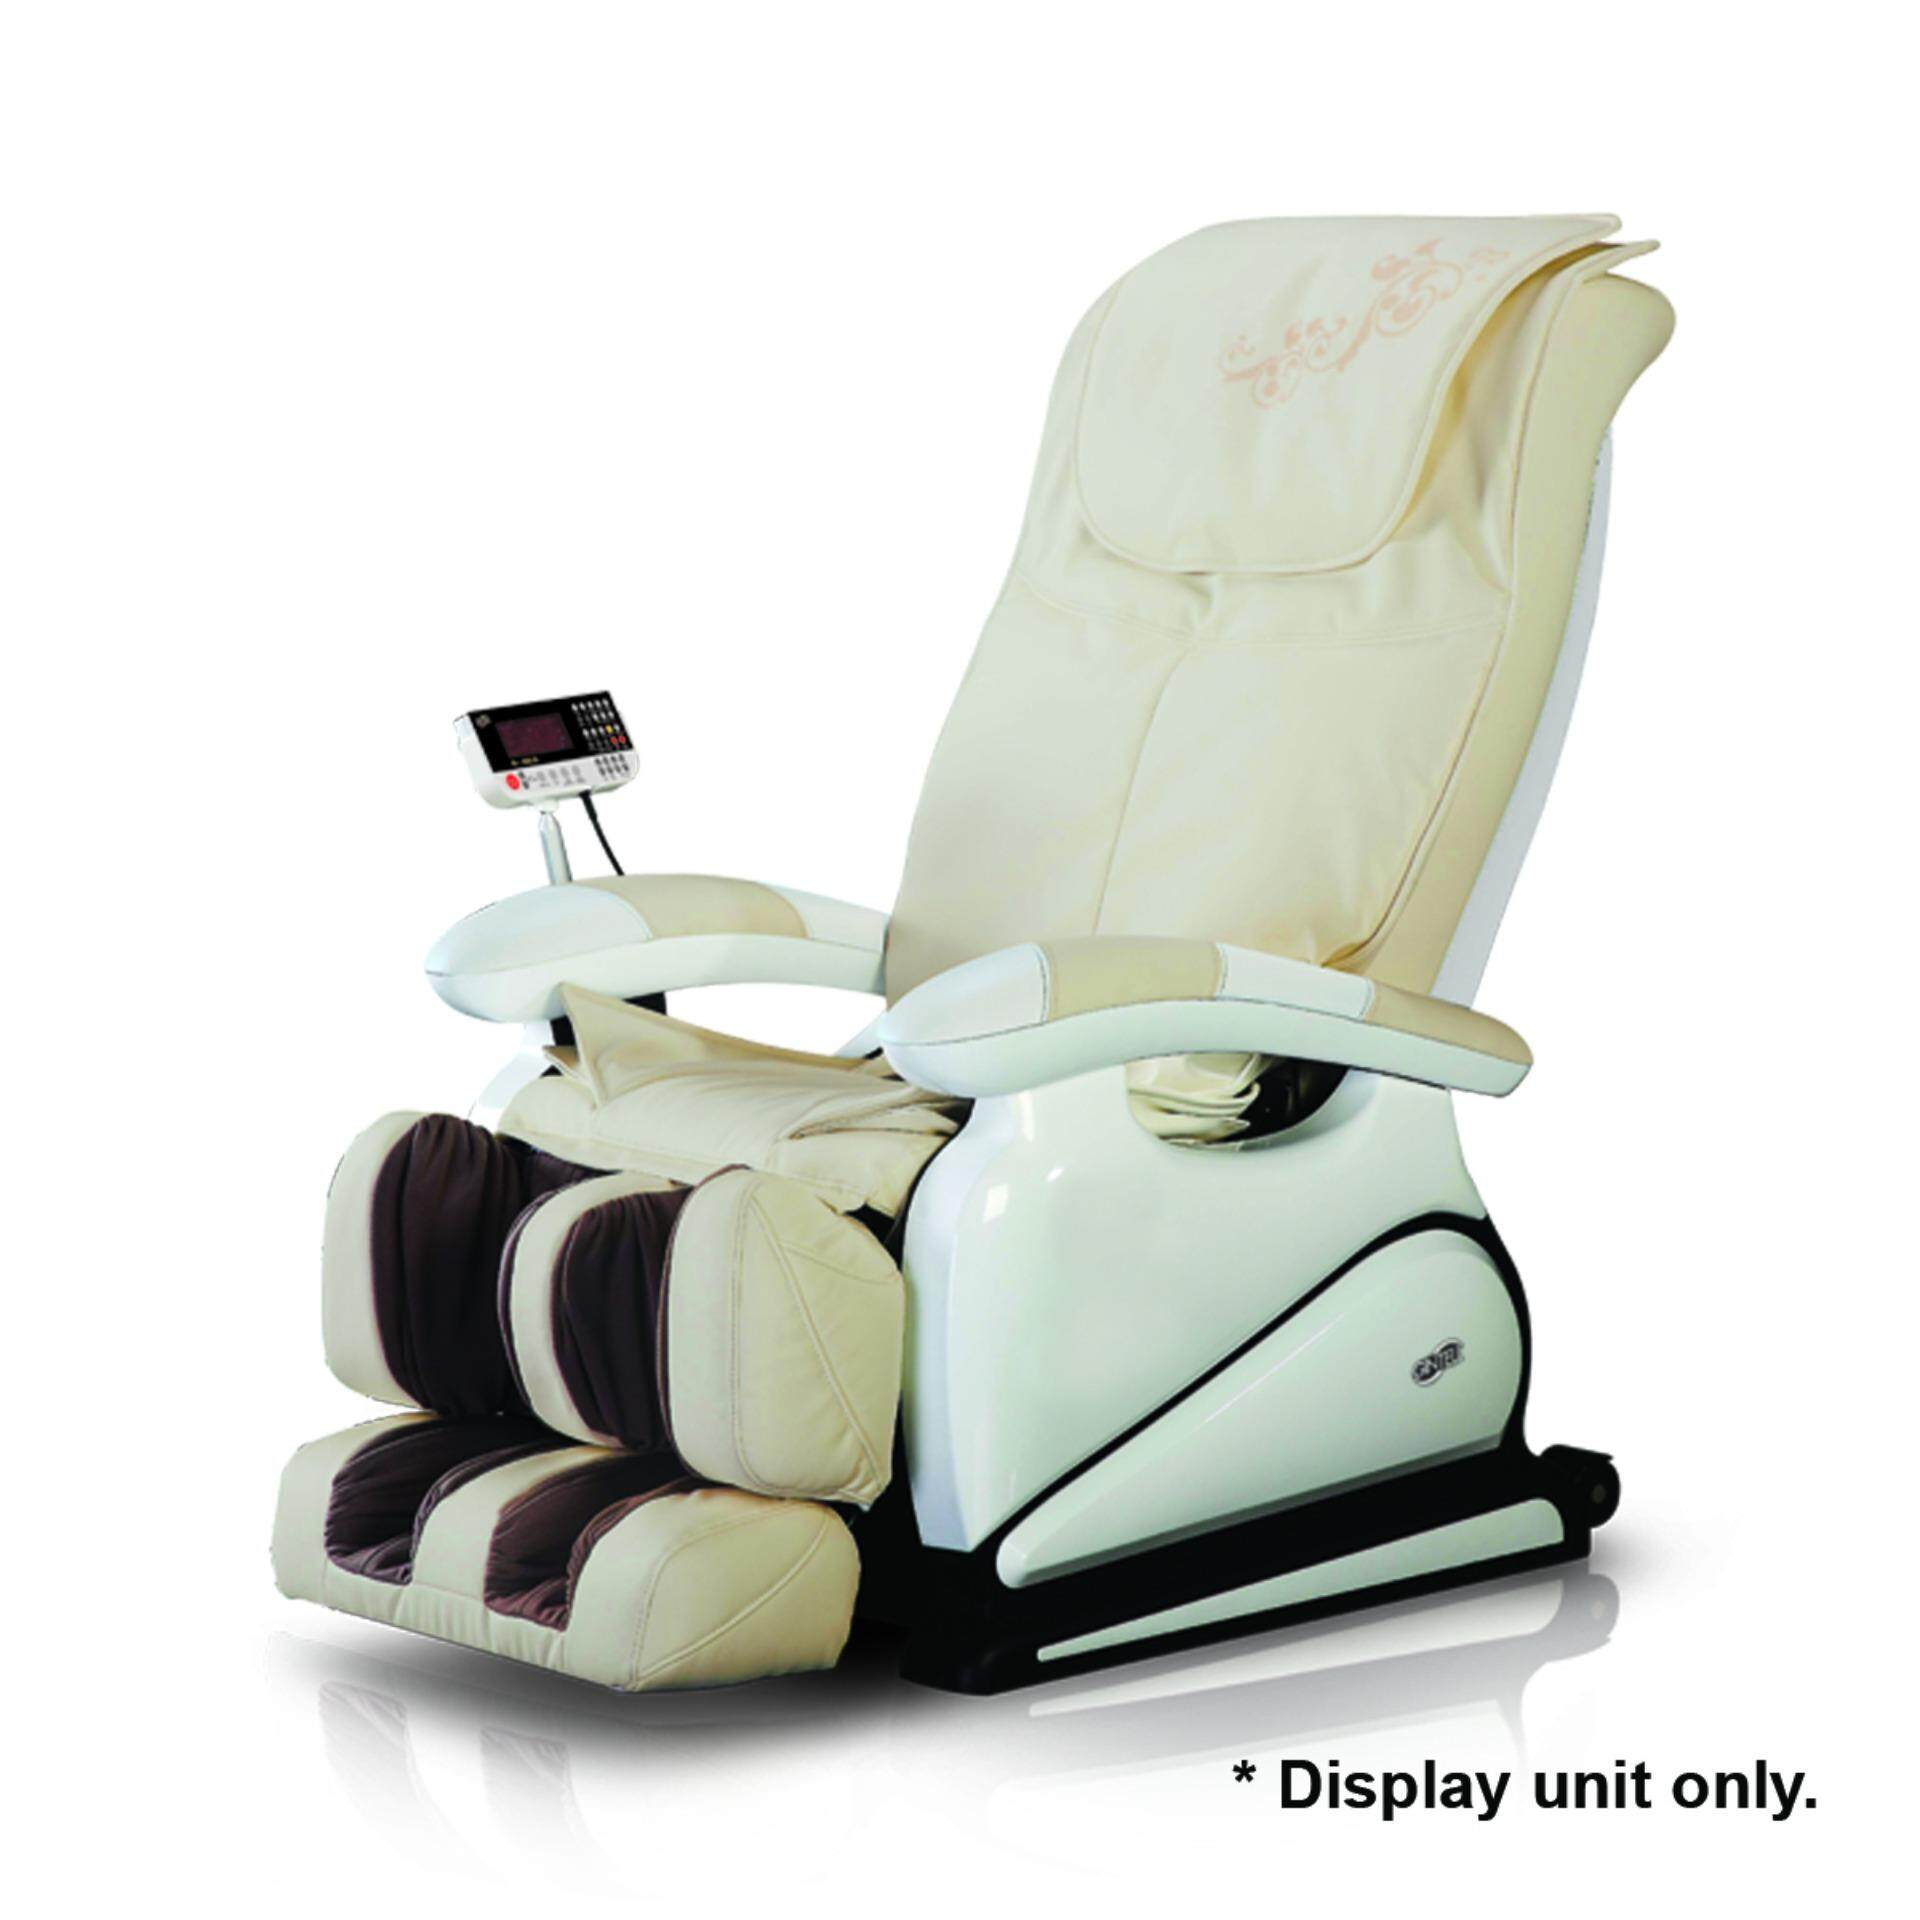 GINTELL G-Pro Gold Massage Chair (Showroom Unit)-Ivory color